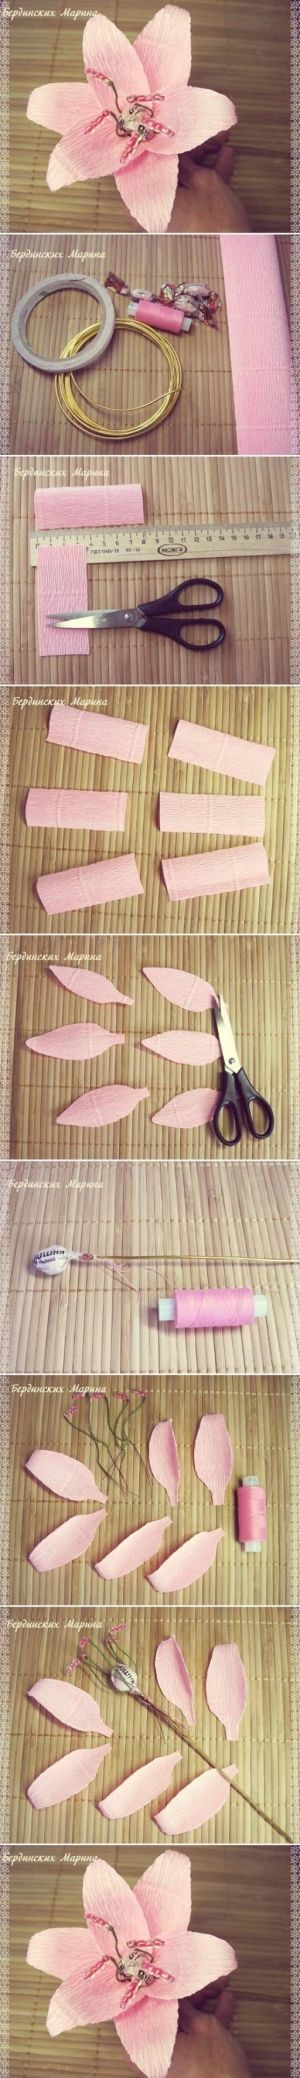 How to make beautiful Lily Flowers step by step DIY tutorial instructions , How to, how to do, diy instructions, crafts, do it yourself, diy by Mary Smith fSesz